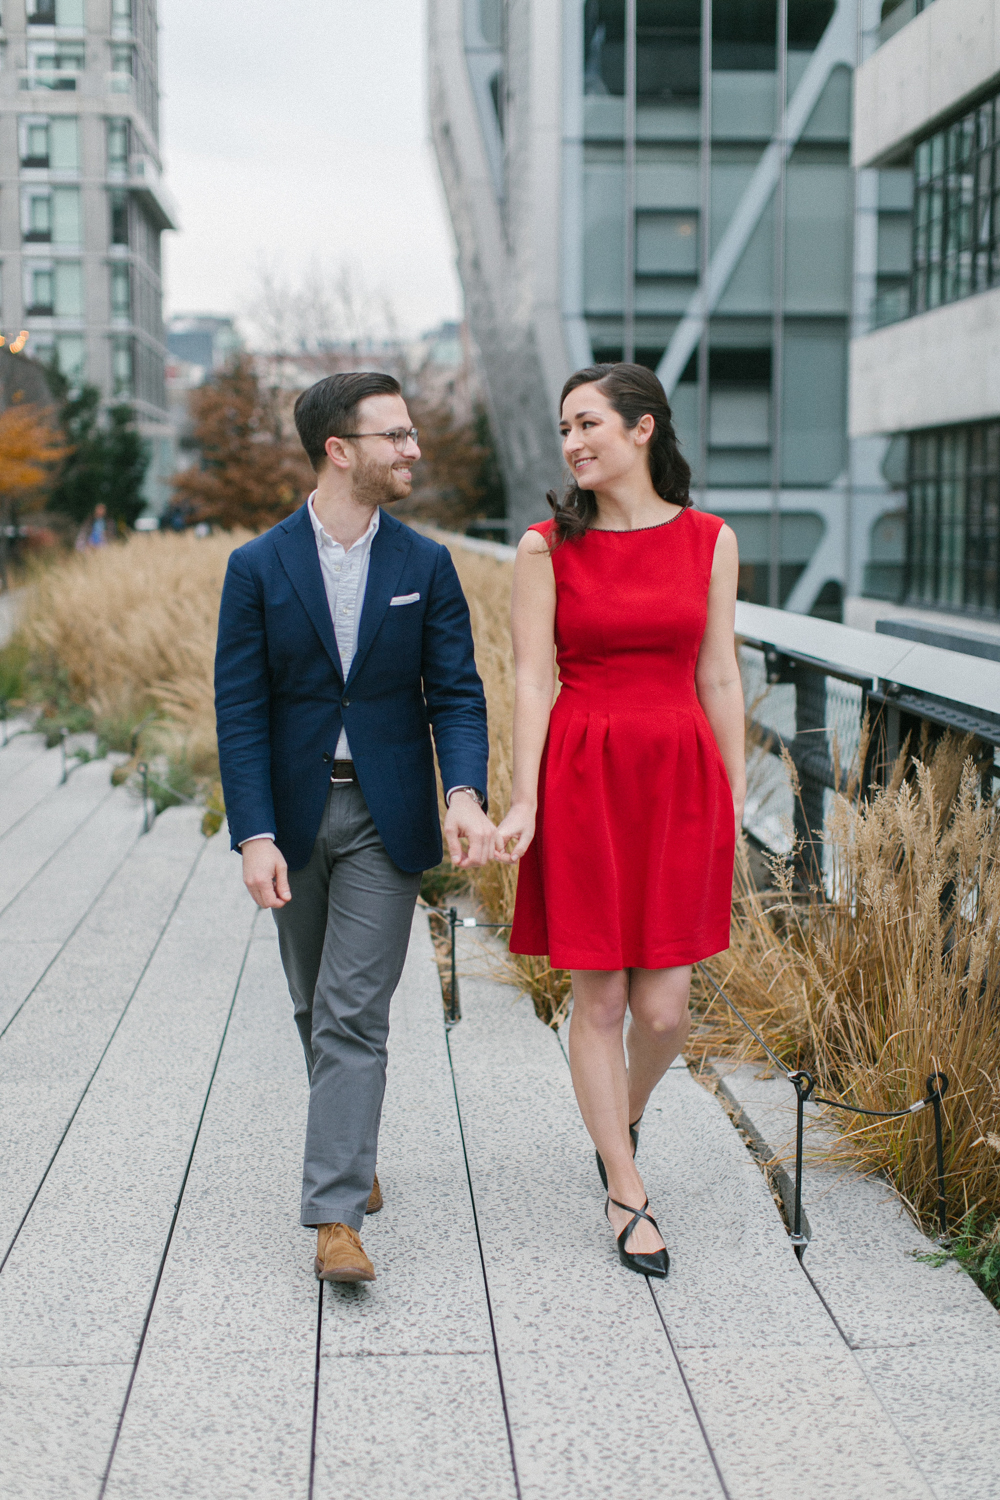 Engaged couple taking a walk through NYC